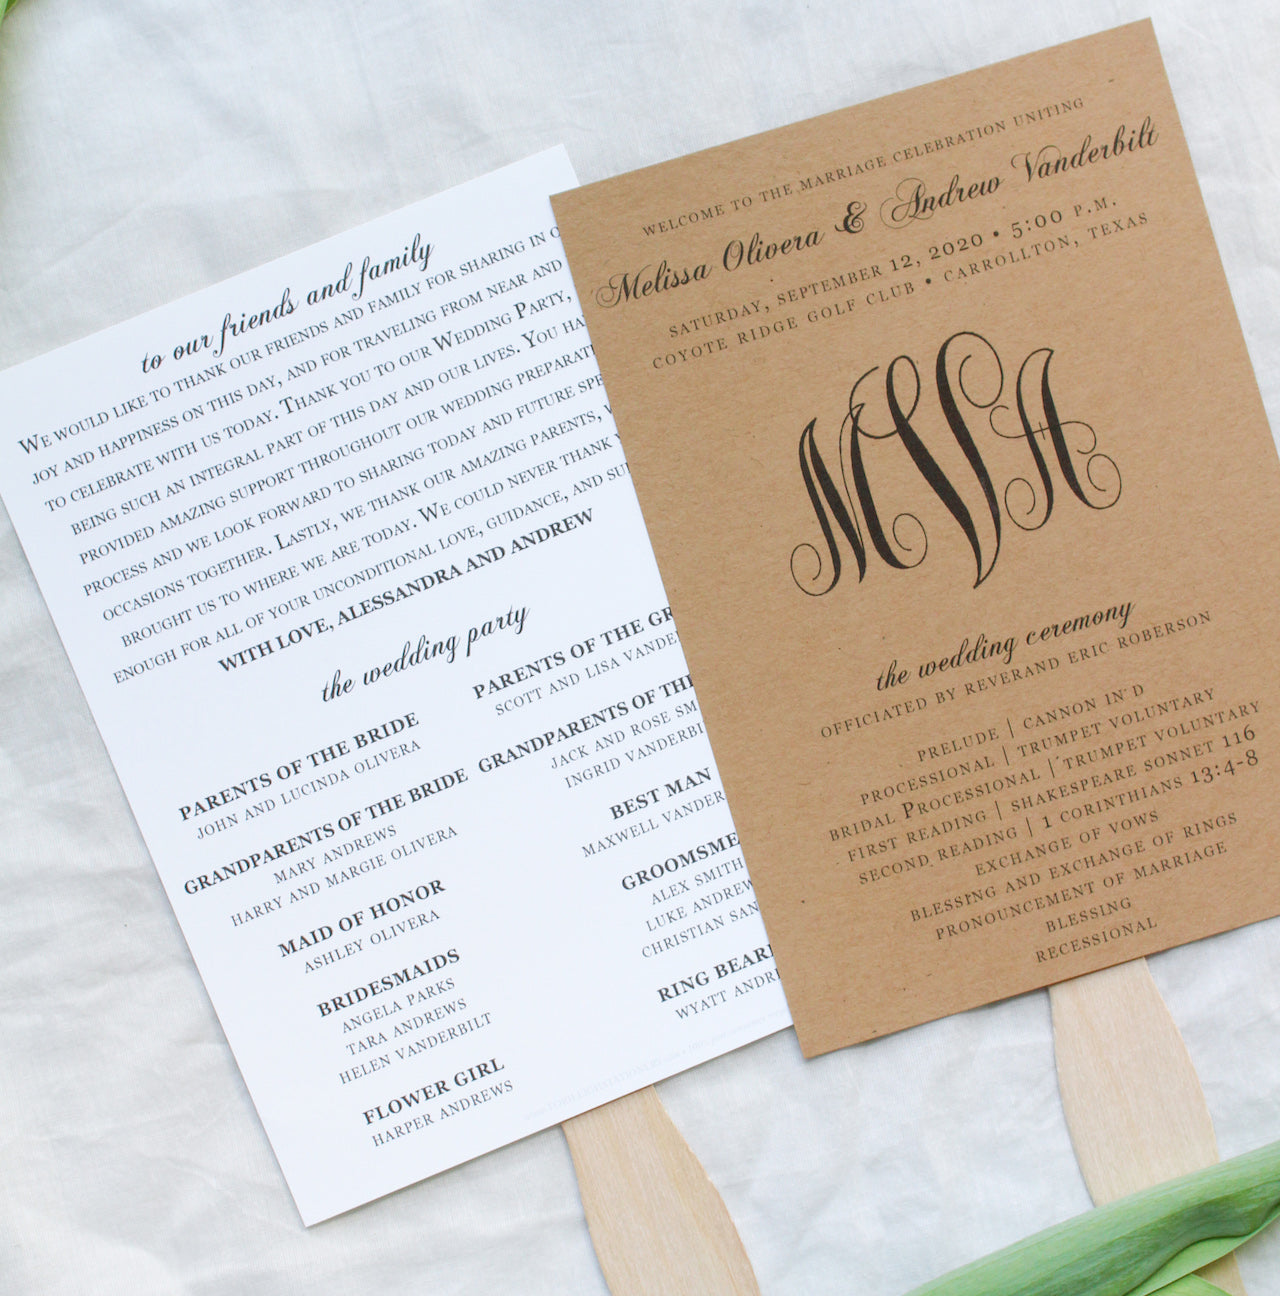 Monogram Paddle Fan Wedding Programs